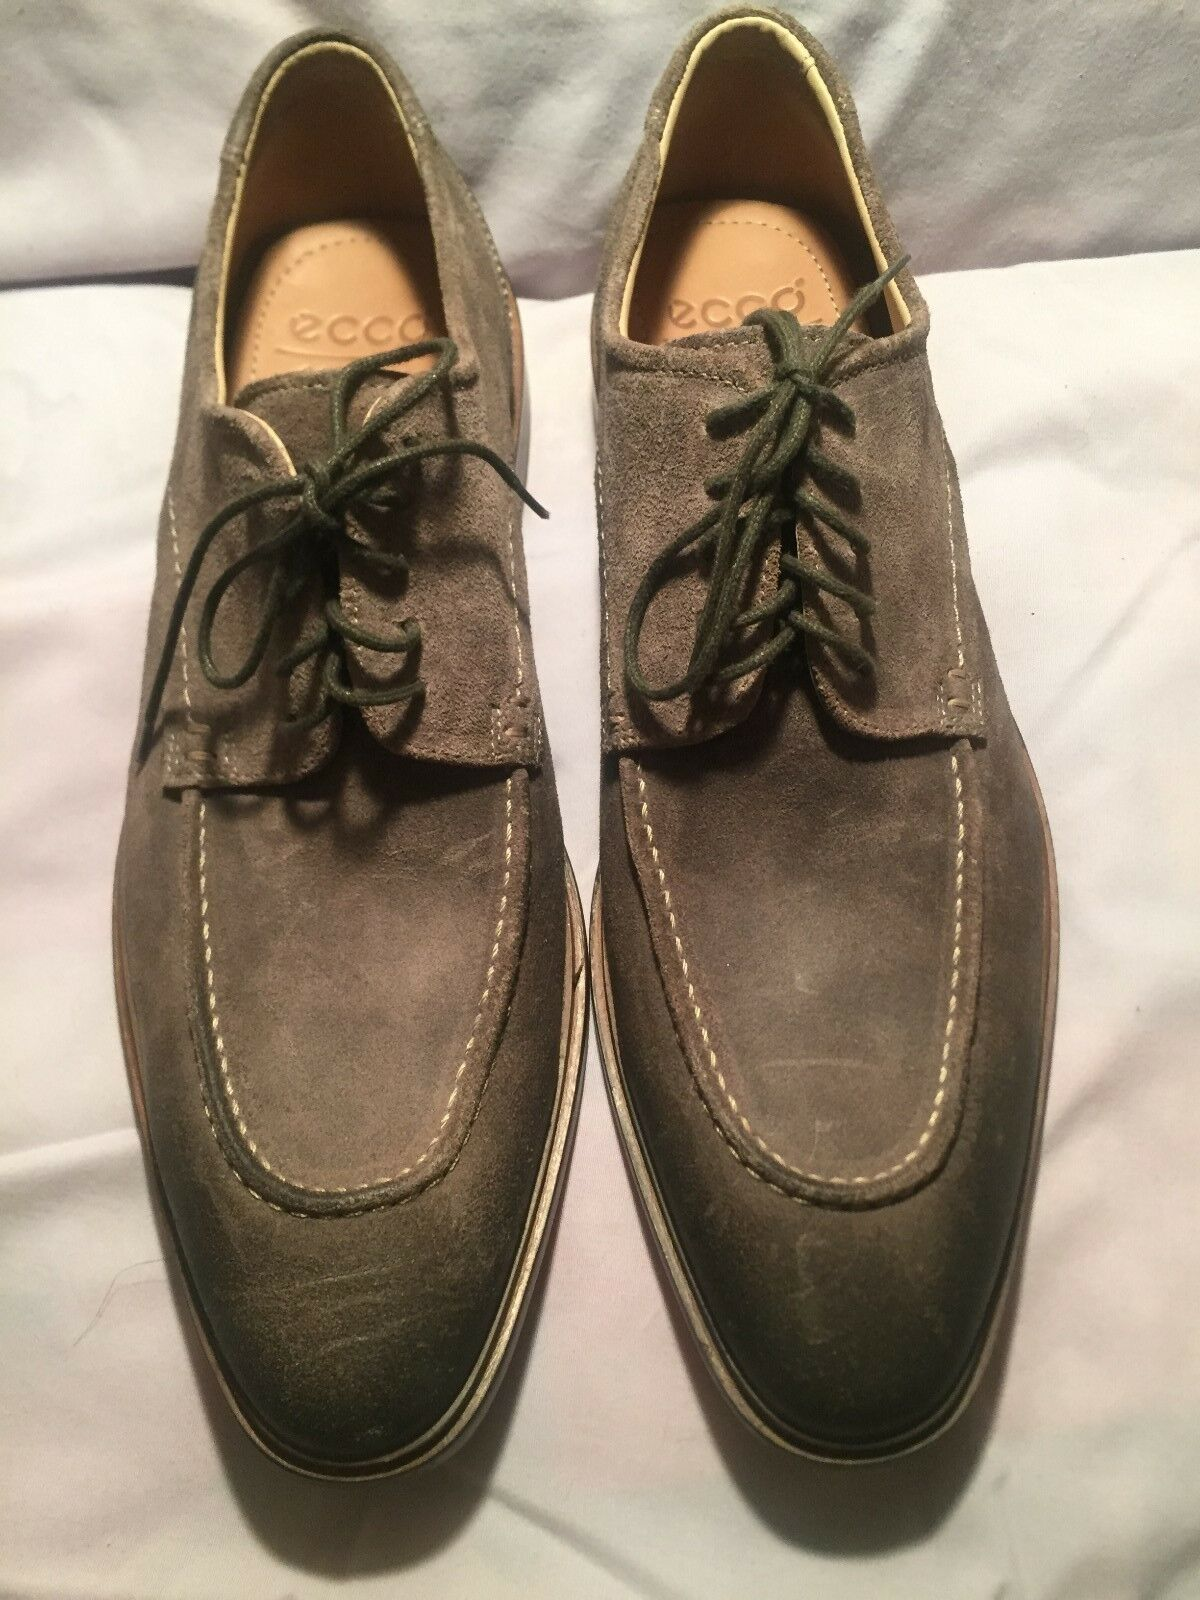 Ecco Mens Leather Lace Ups Euro 45 Slip Resistant Soles Nice shoes